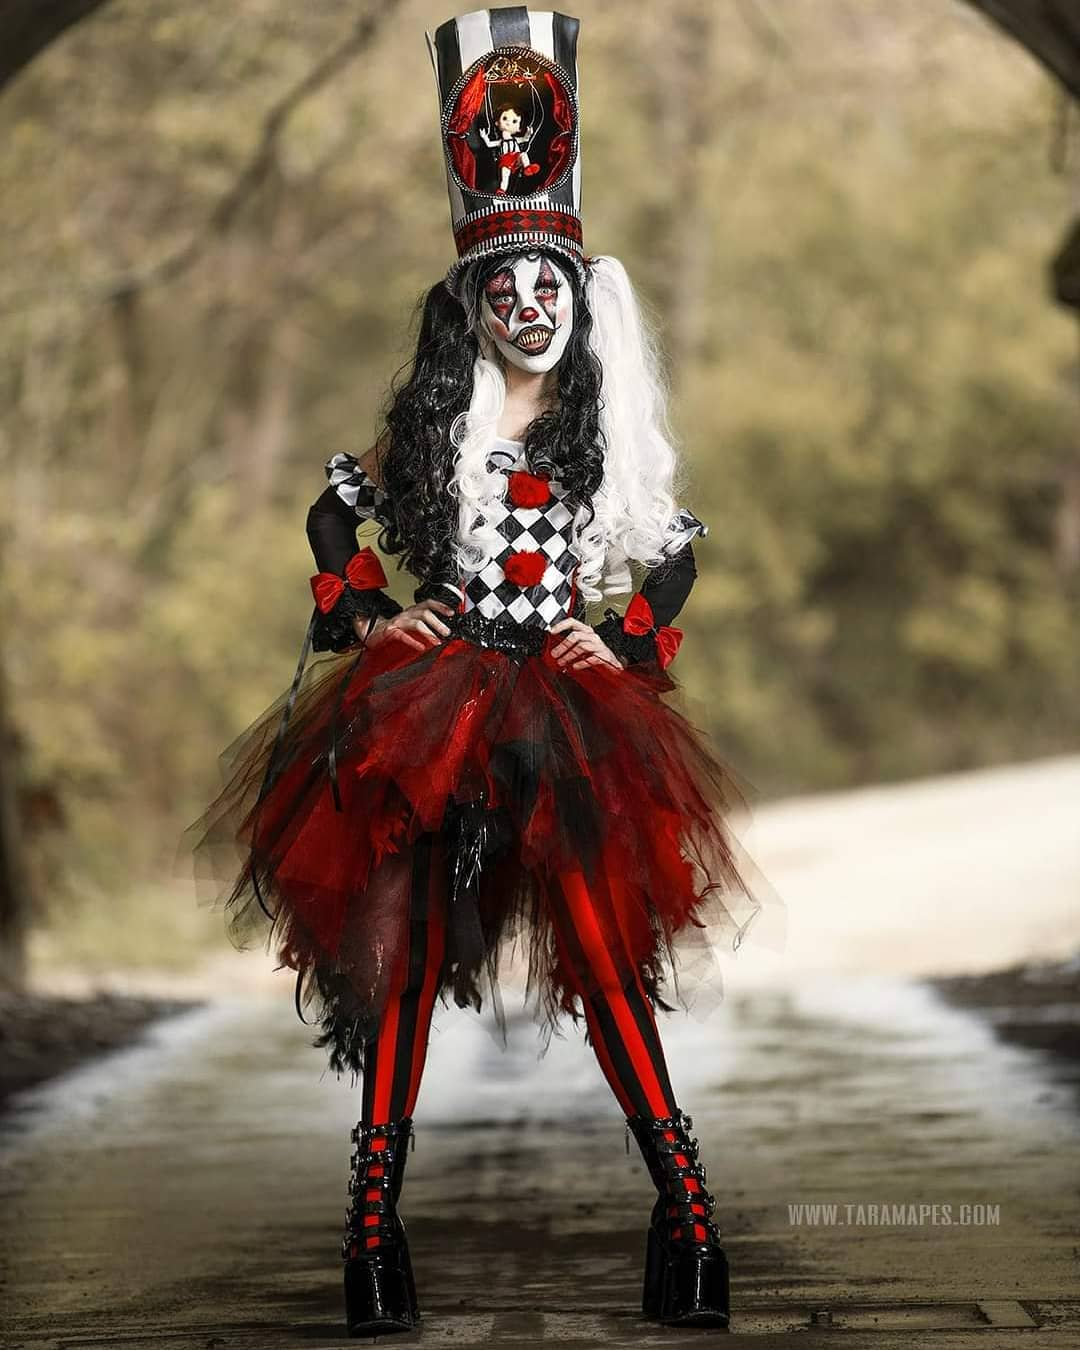 Photographer Captures a Dark Carnival Themed Photoshoot to Create Couture Clowns in Abandoned Creepy Nature